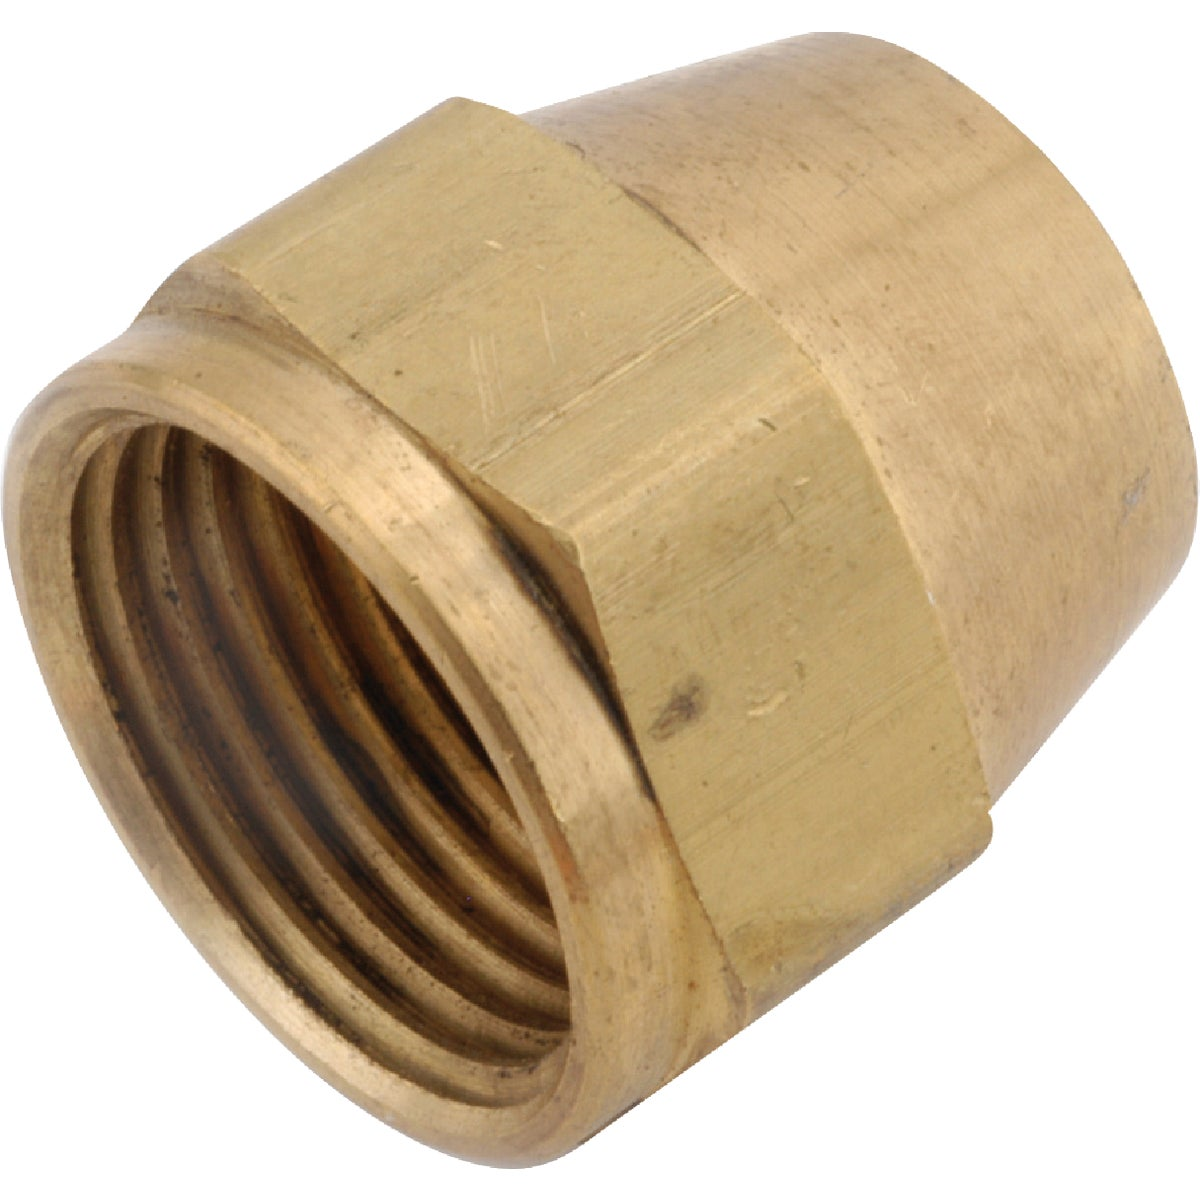 "3/8"" FLARE NUT - 754014-06 by Anderson Metals Corp"